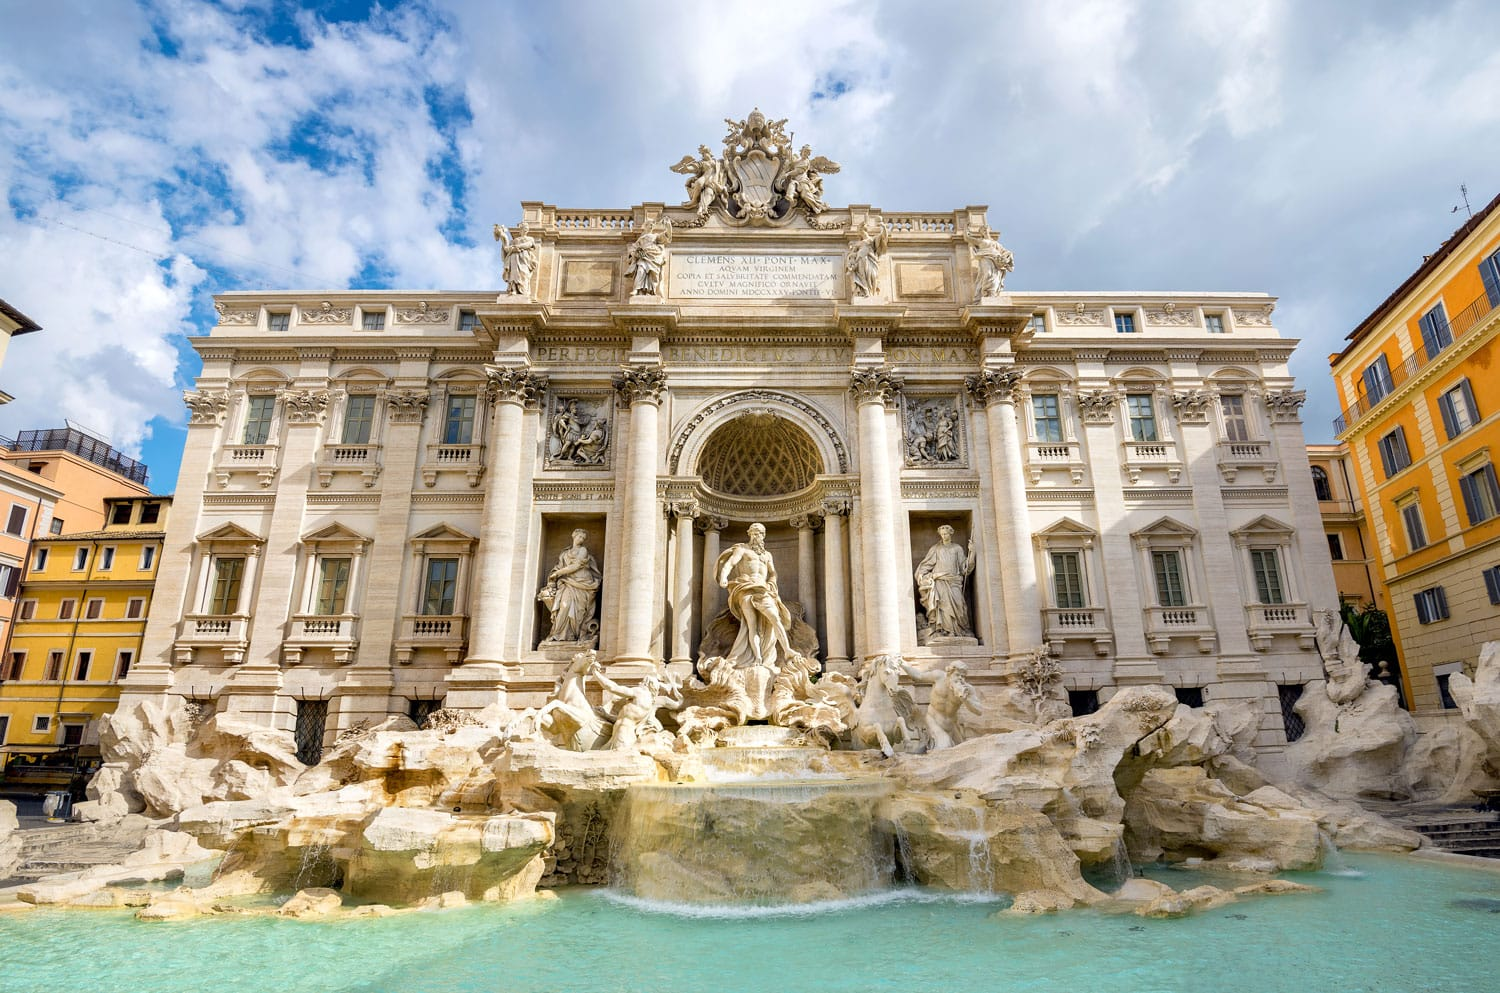 Famous fountain Trevi in Rome. Italy